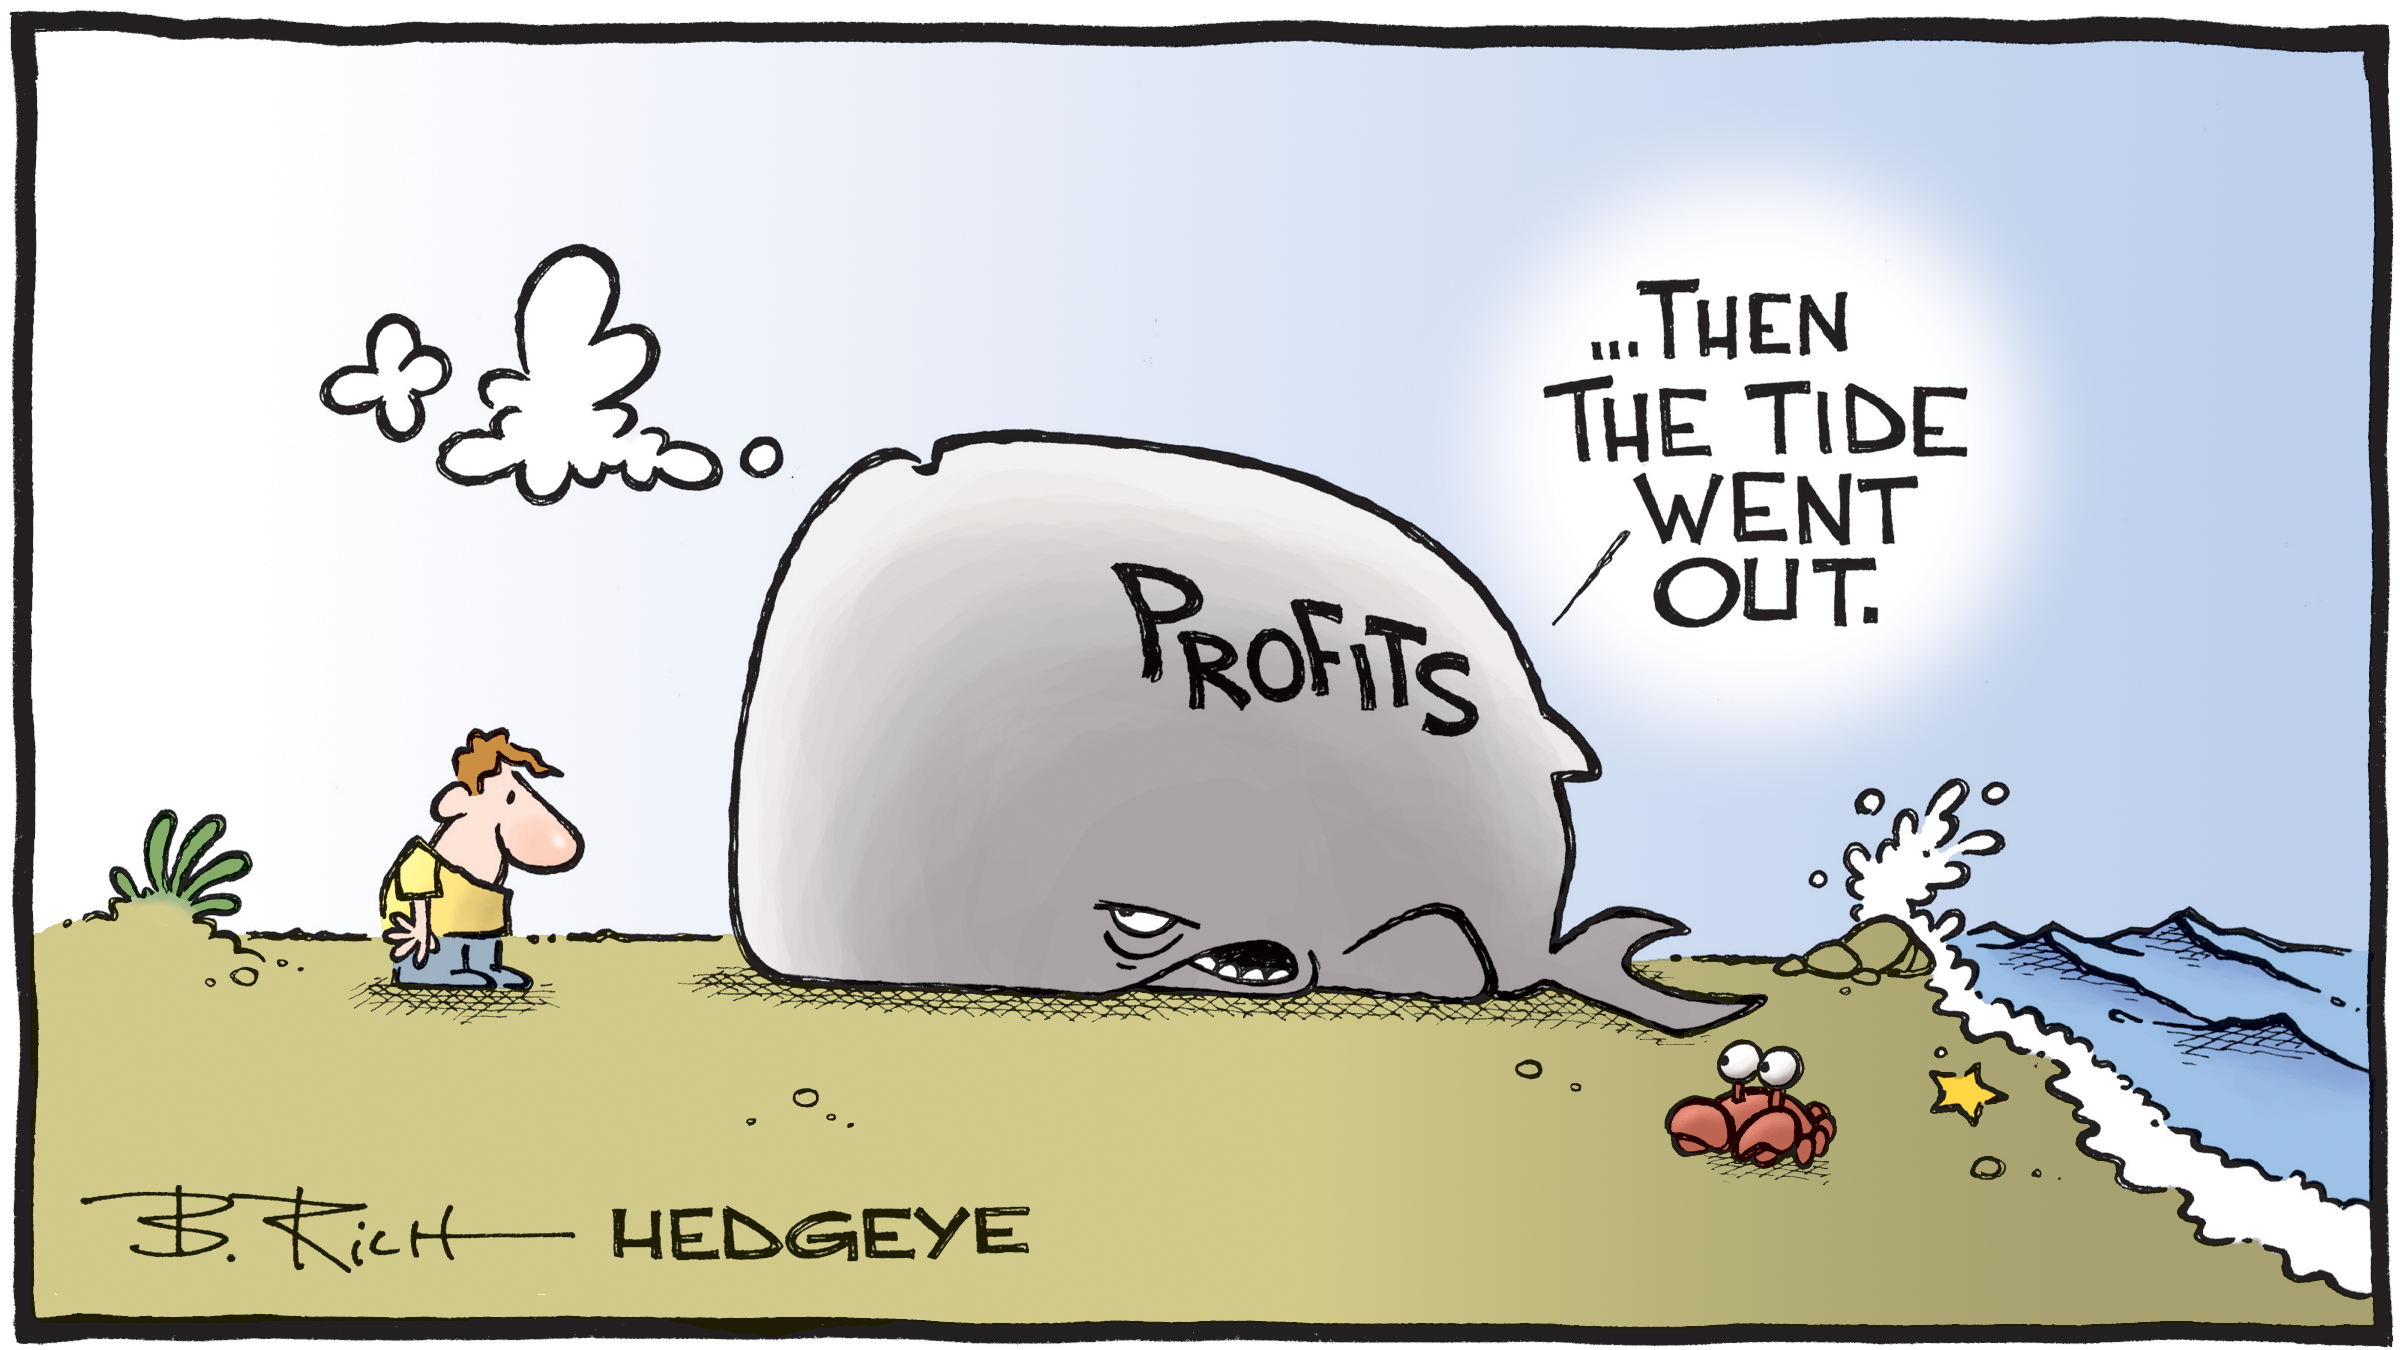 04.15.2019_Profit_beached_whale_cartoon.png